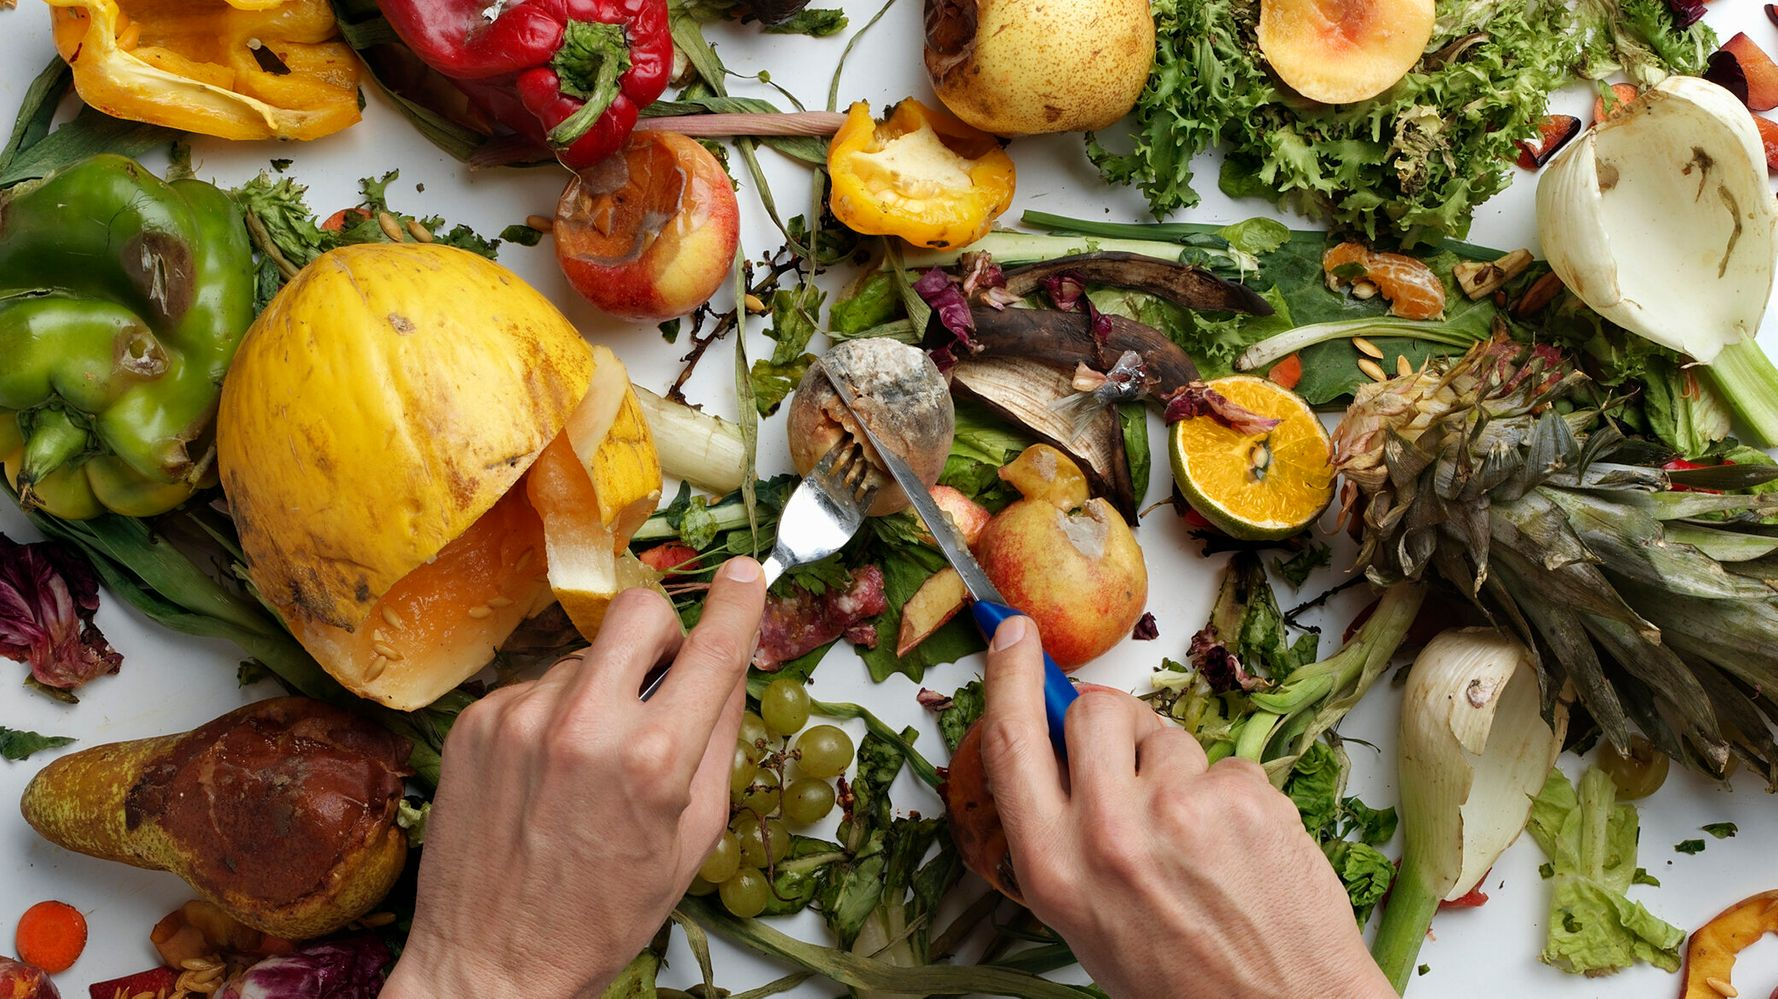 Ozharvest-united-nations-urge-aussies-to-change-food-waste-habits-and-pledgeaplate-to-save-8-billion-per-year